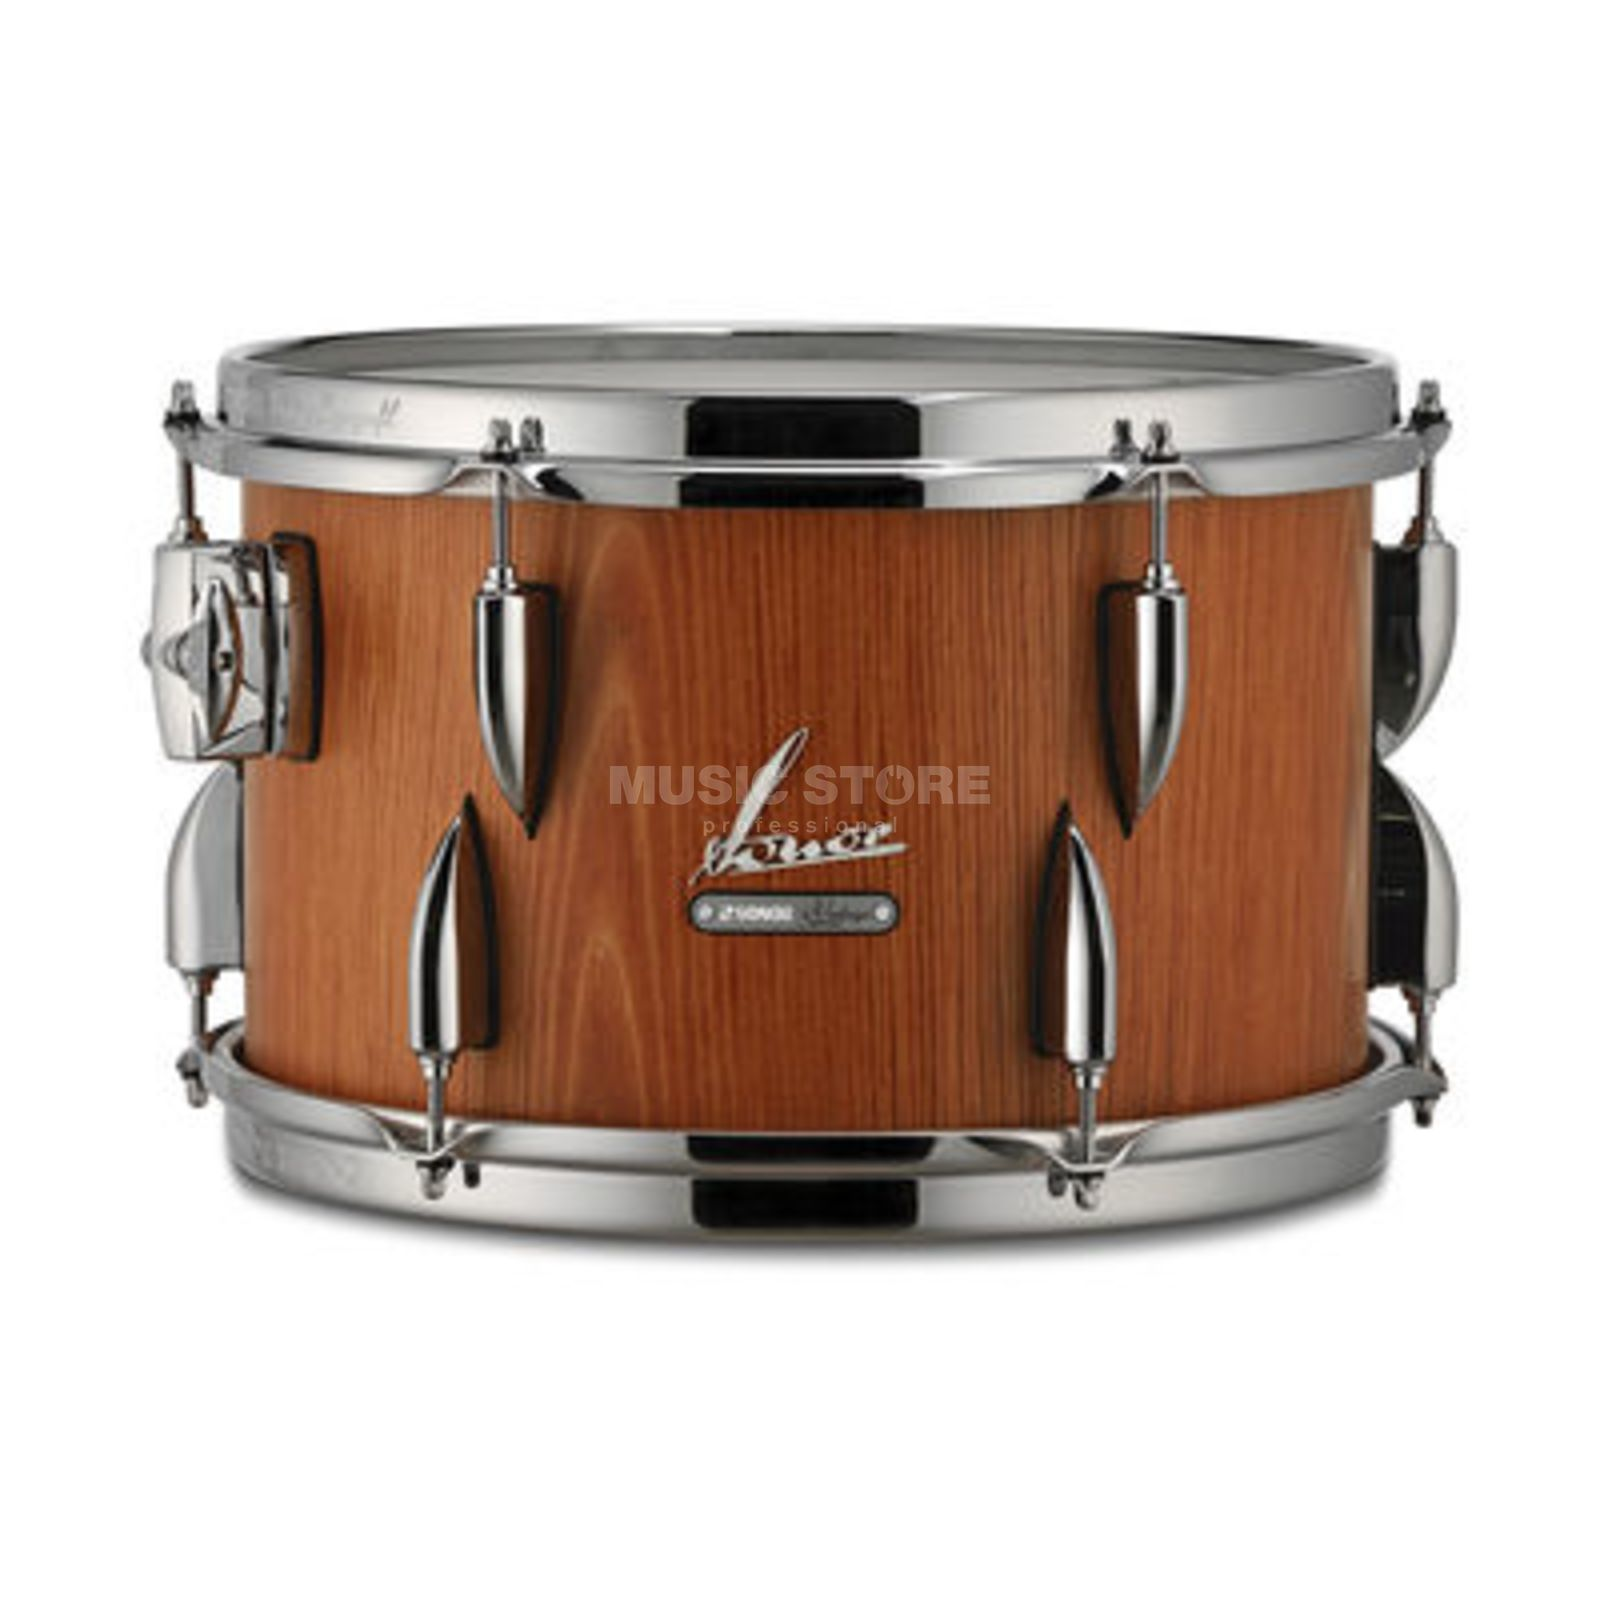 "Sonor Vintage Series Tom 10""x8"", Vintage Natural Produktbild"